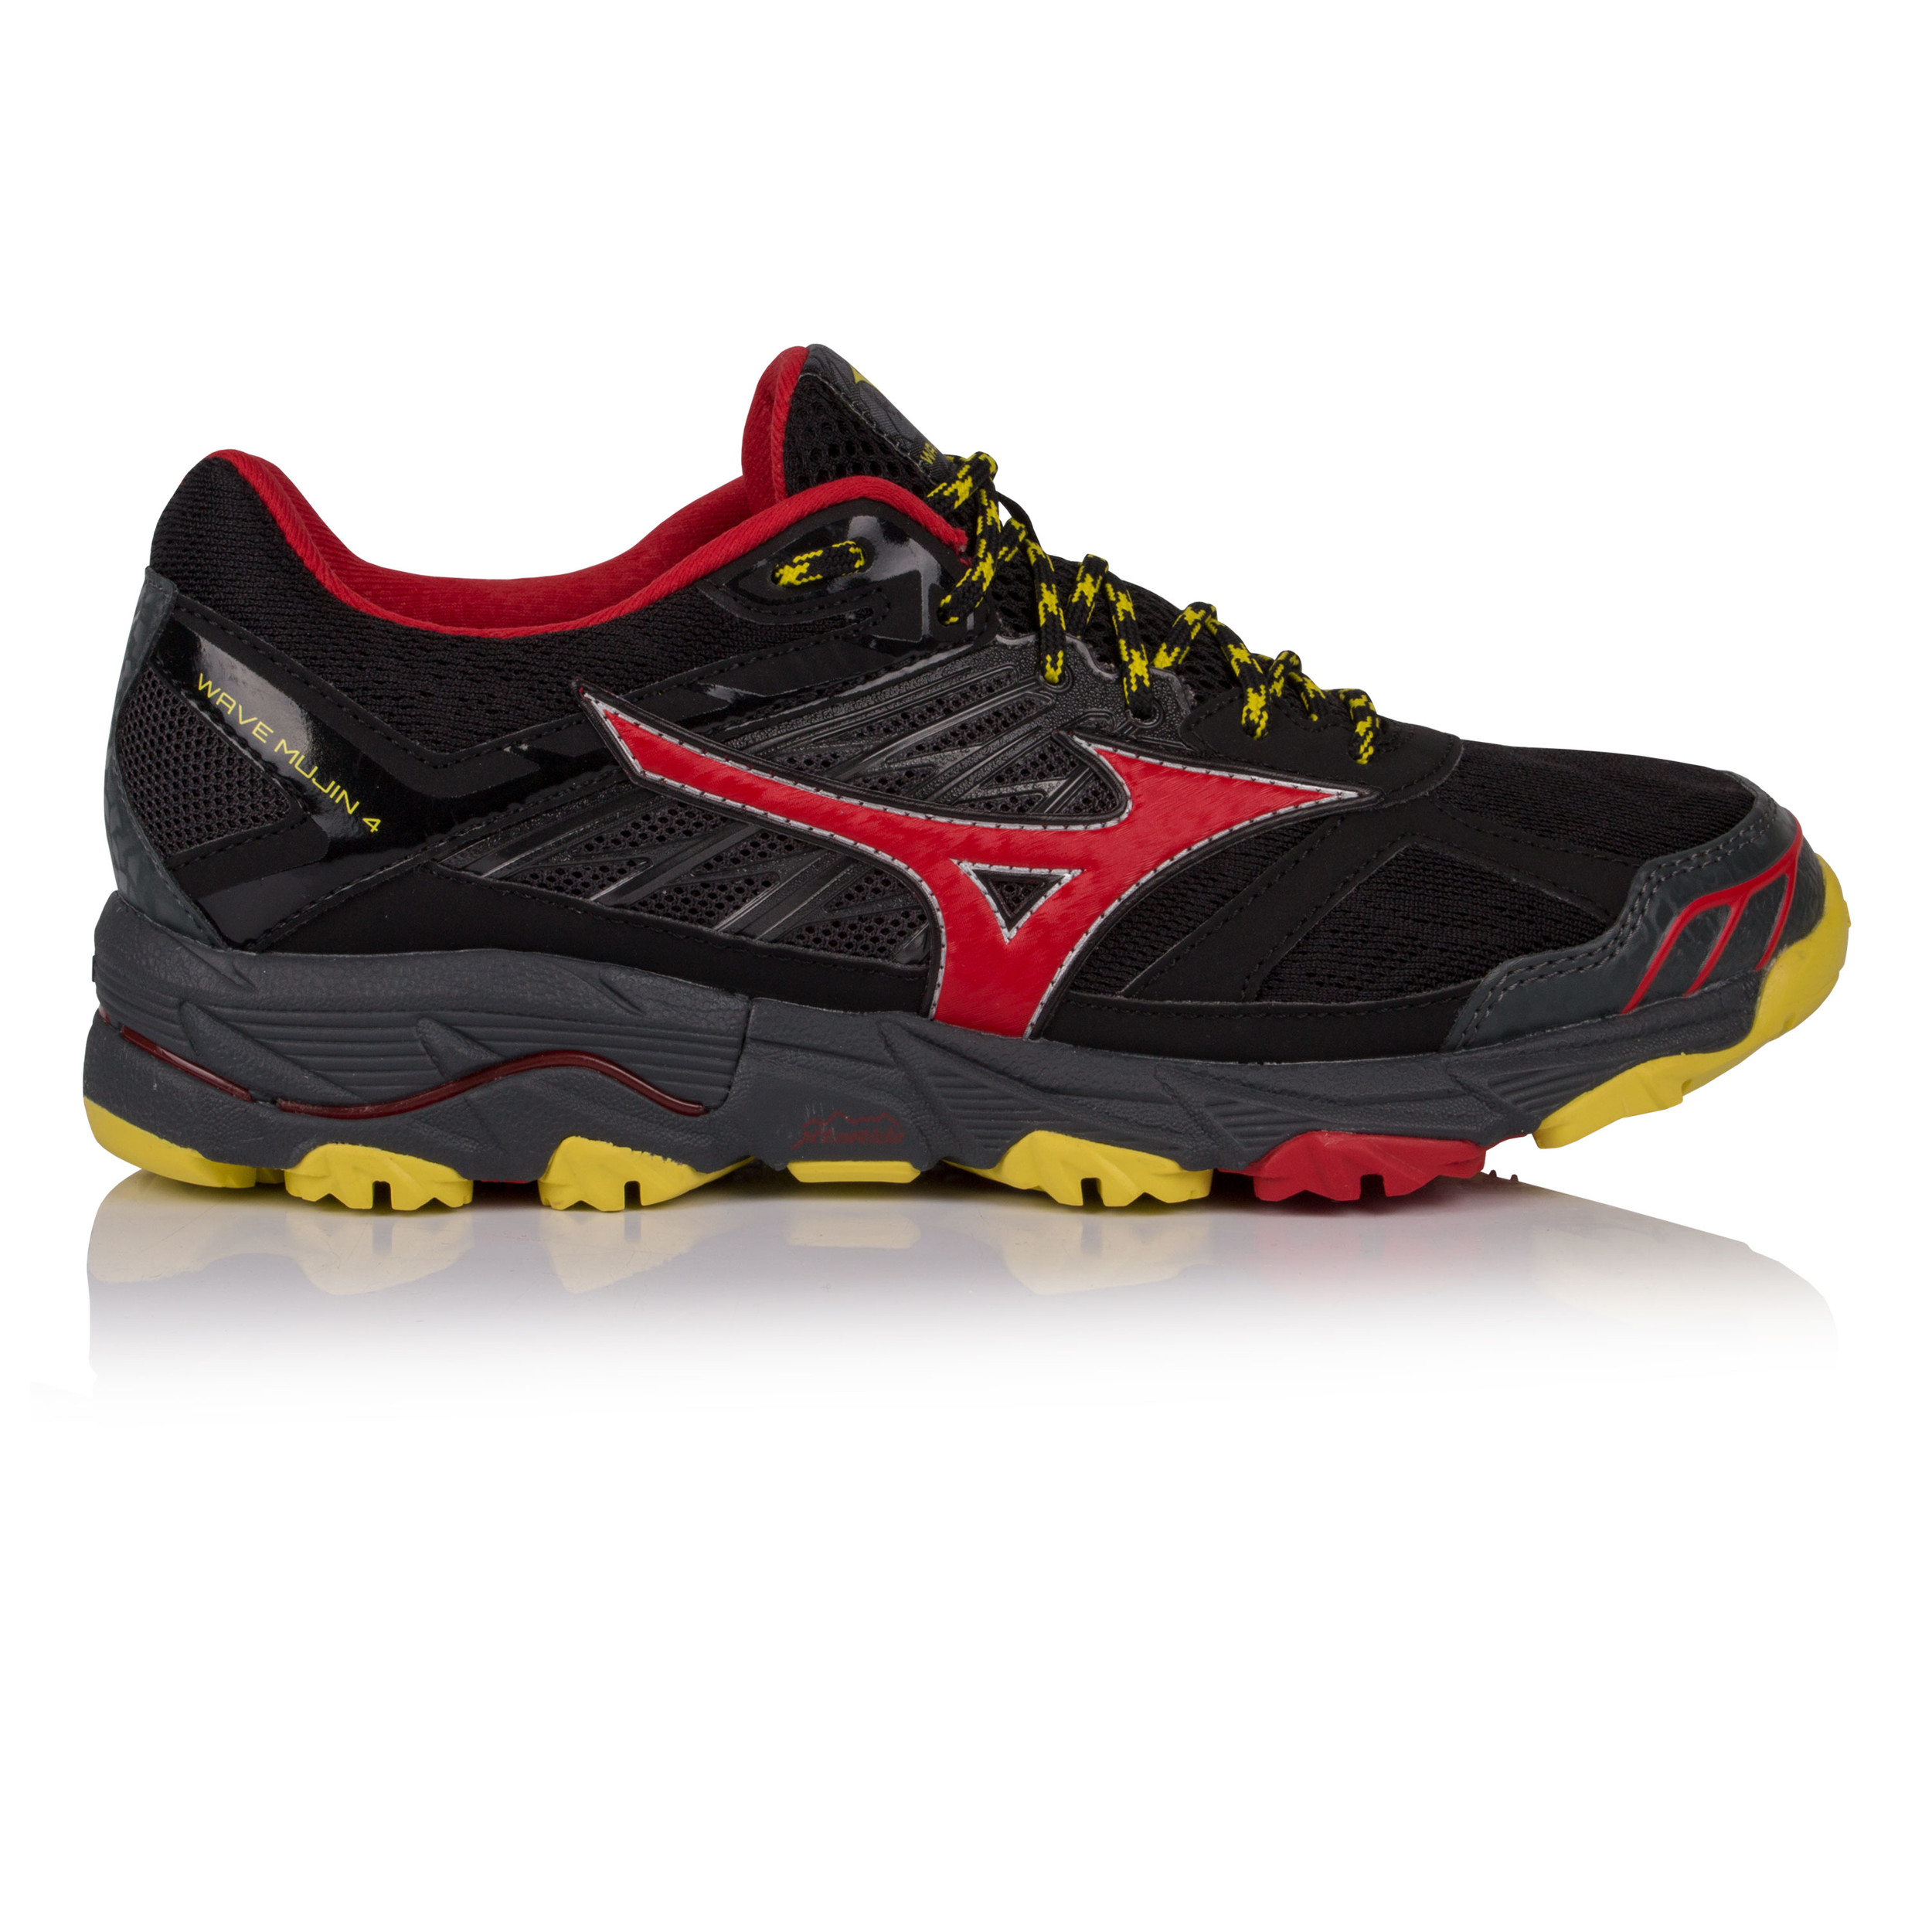 5f86eb433fae Details about Mizuno Mens Wave Mujin 4 Trail Running Shoes Trainers Sneakers  Black Sports